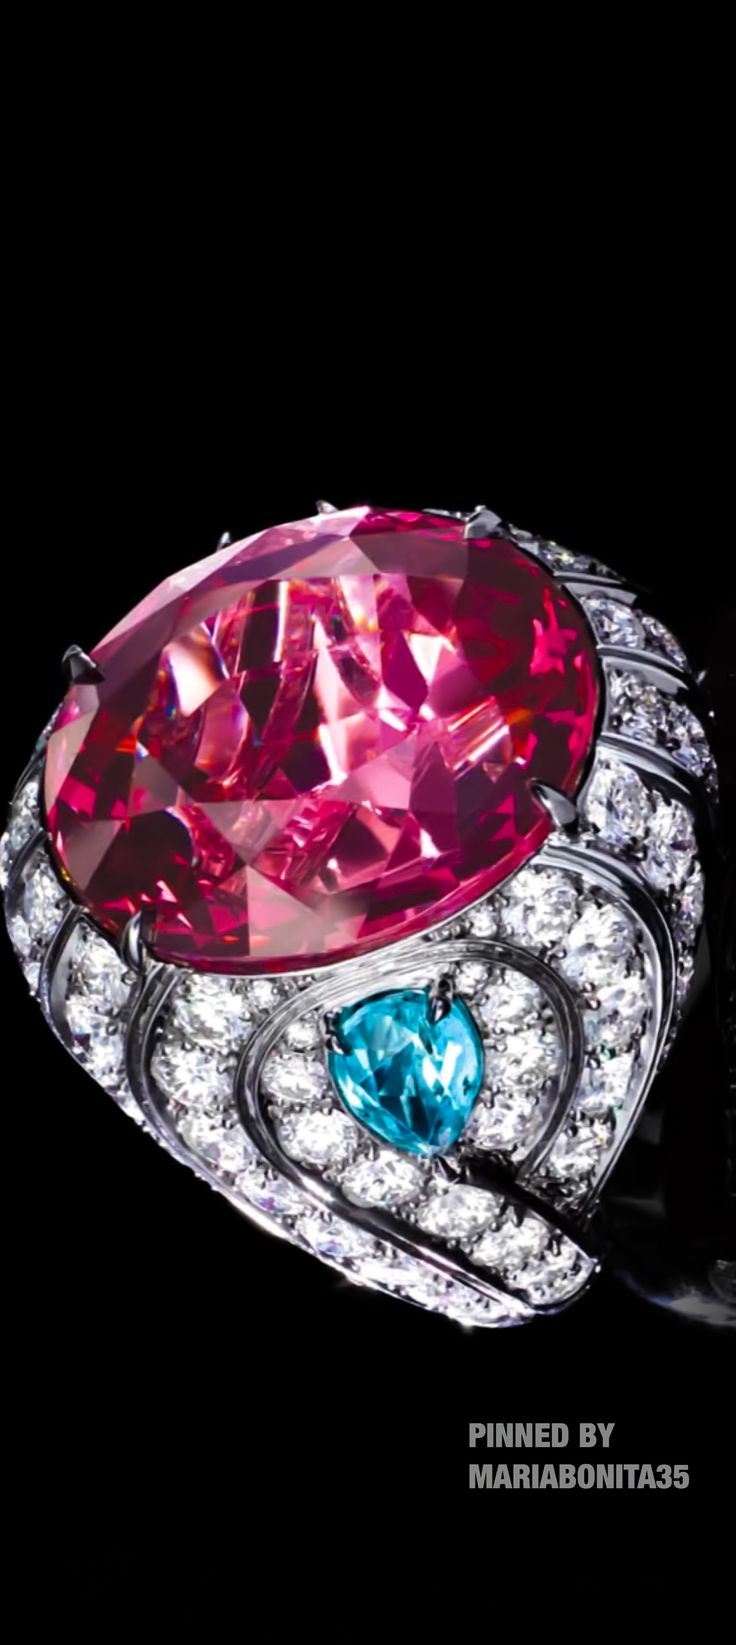 Tiffany & Co Pink Spinel Wave Ring